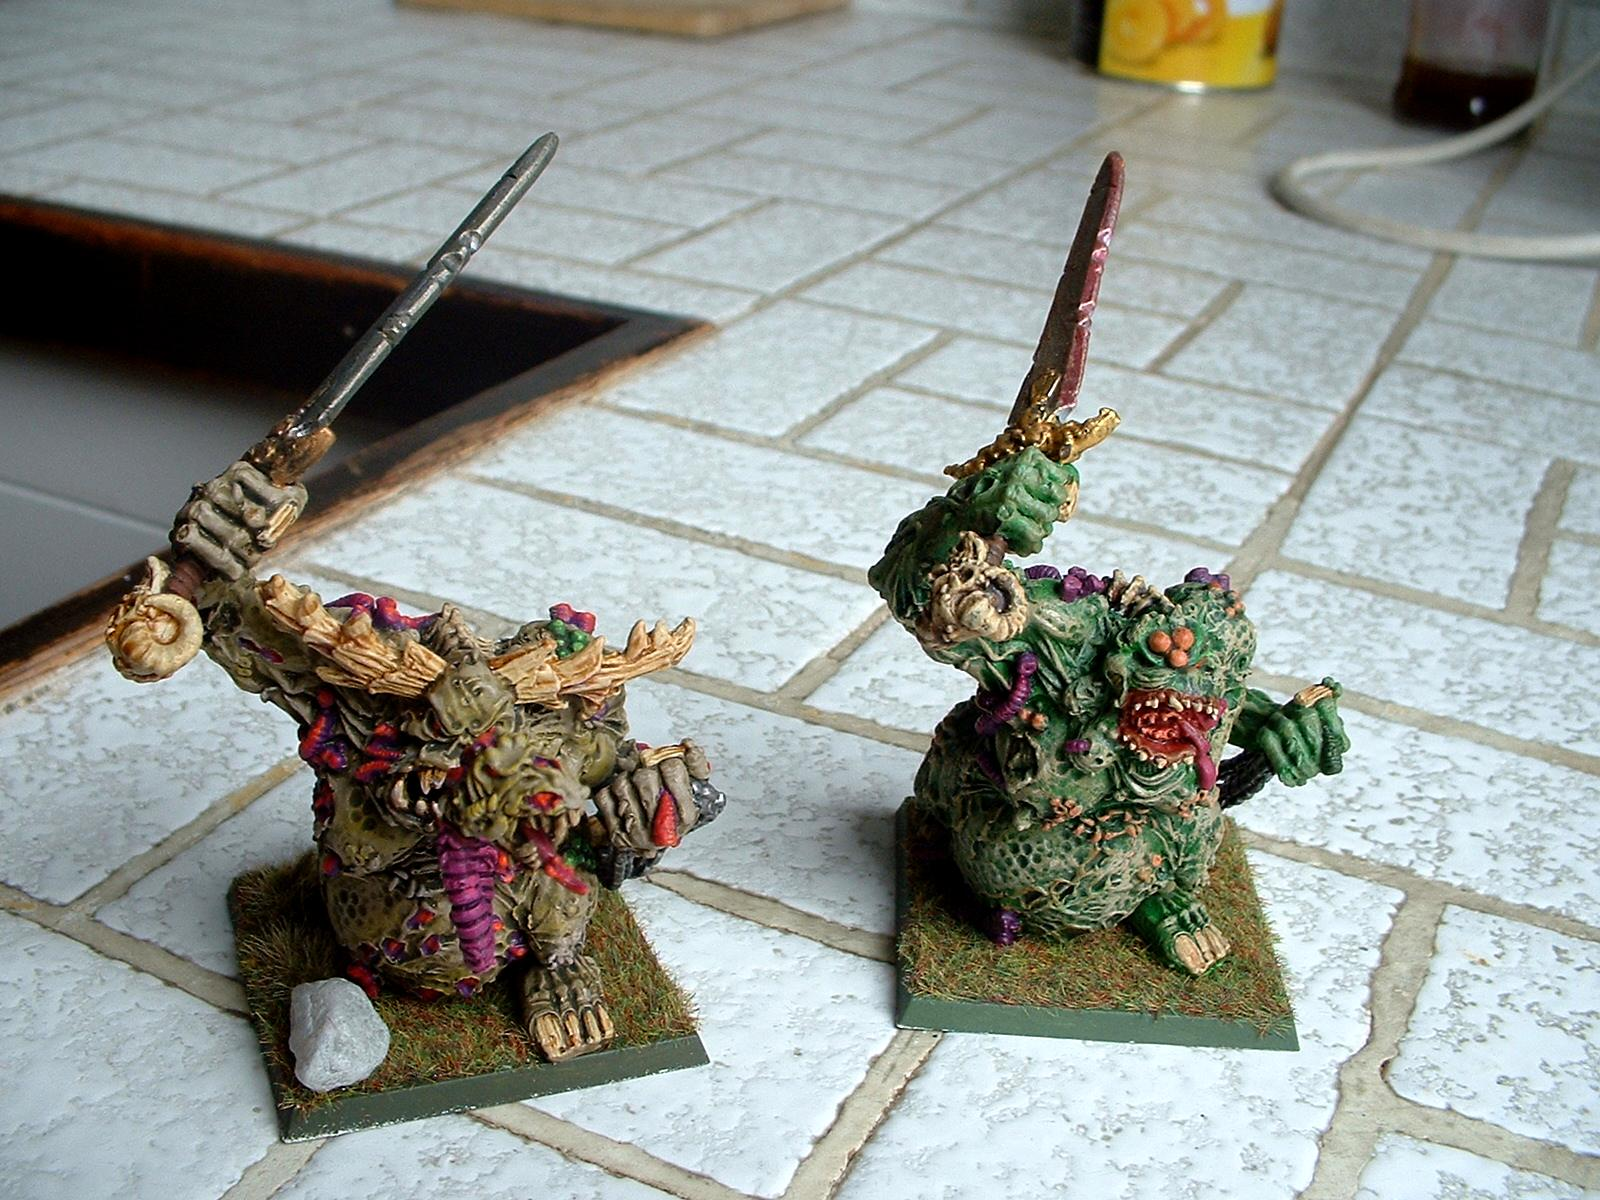 Chaos, Daemons, Great Unclean One, Greater Demon, Guo, Headquarters, Nurgle